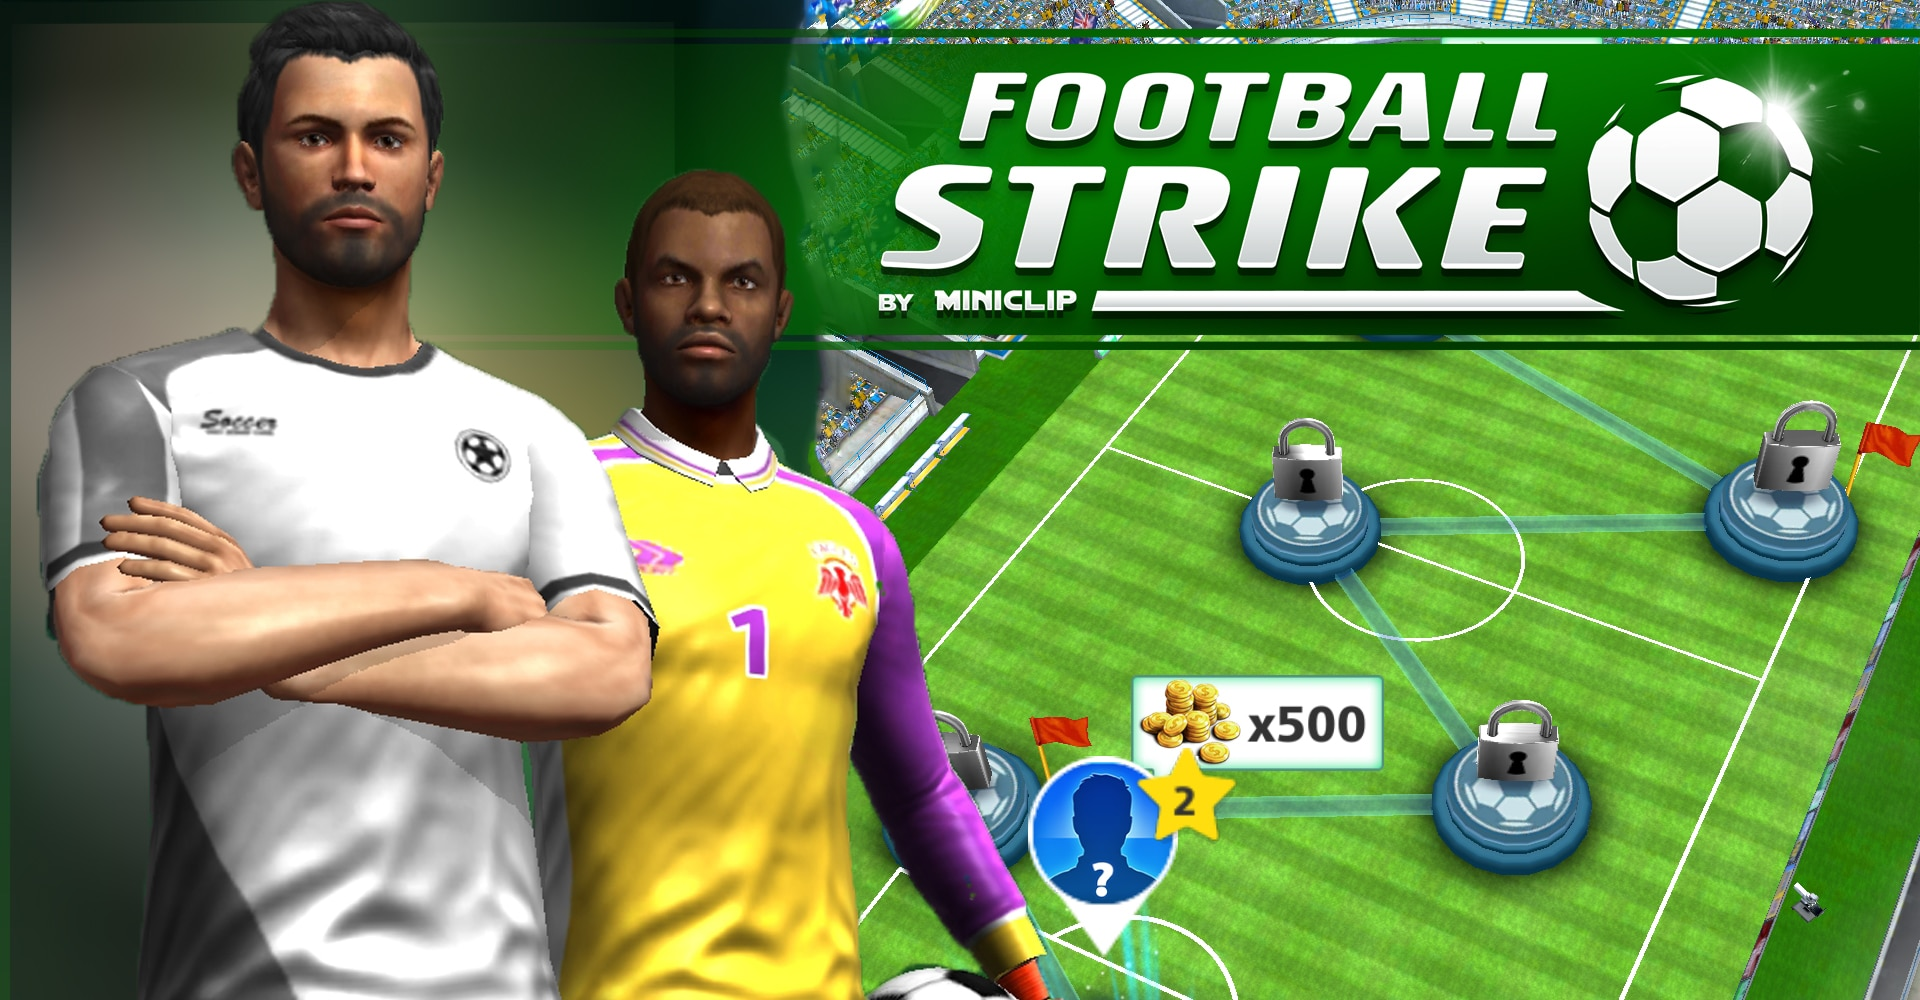 Download FOOTBALL STRIKE APK - For Android/iOS 8